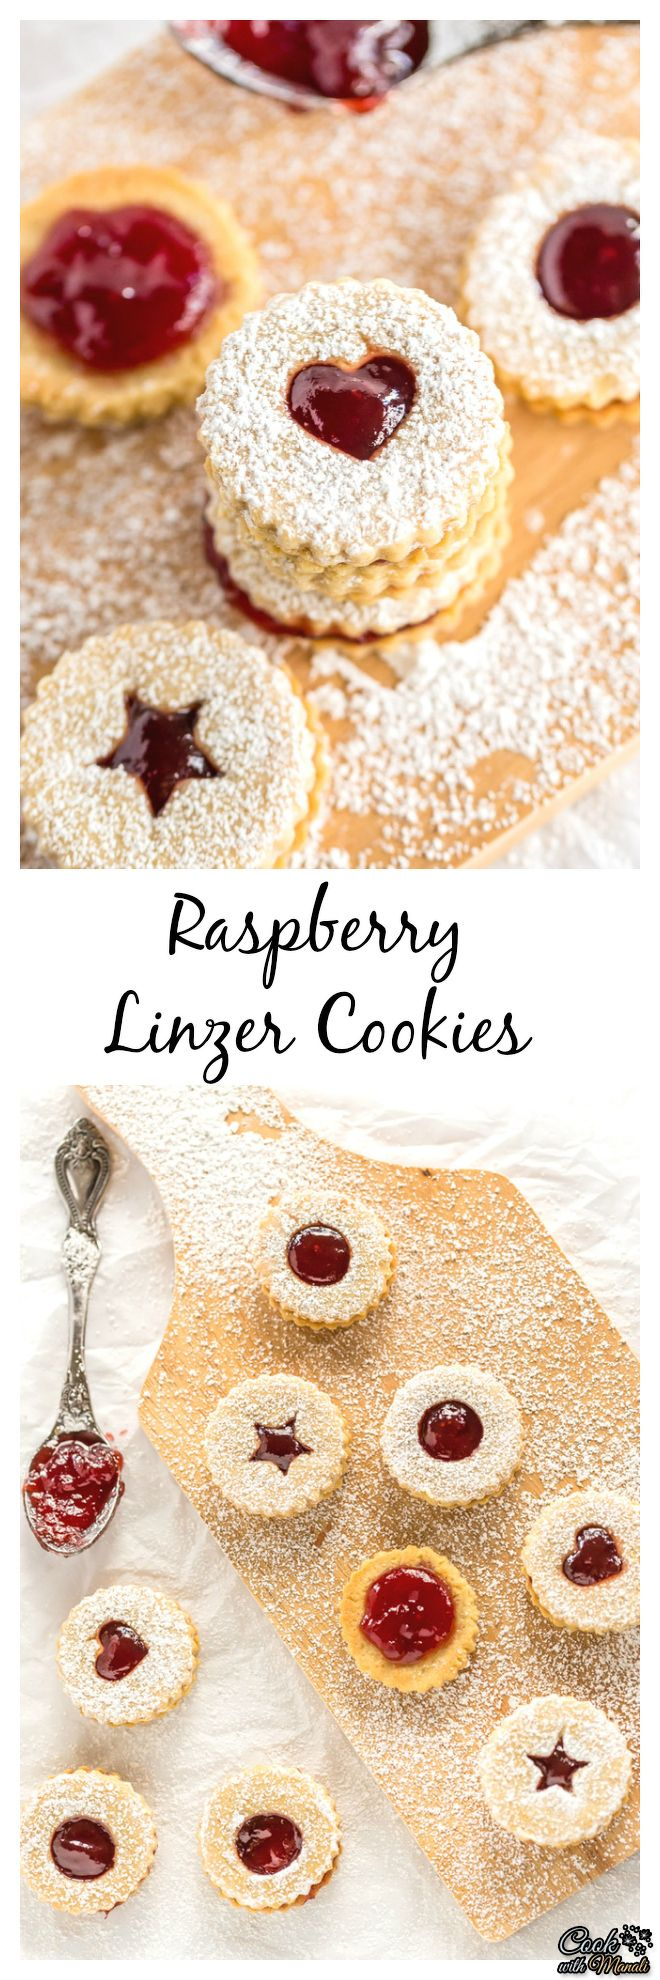 Lightly sweetened, filled with raspberry jam and dusted with powdered sugar, these Raspberry Linzer Cookies are a favorite! #cookies #holidays #baking #christmas